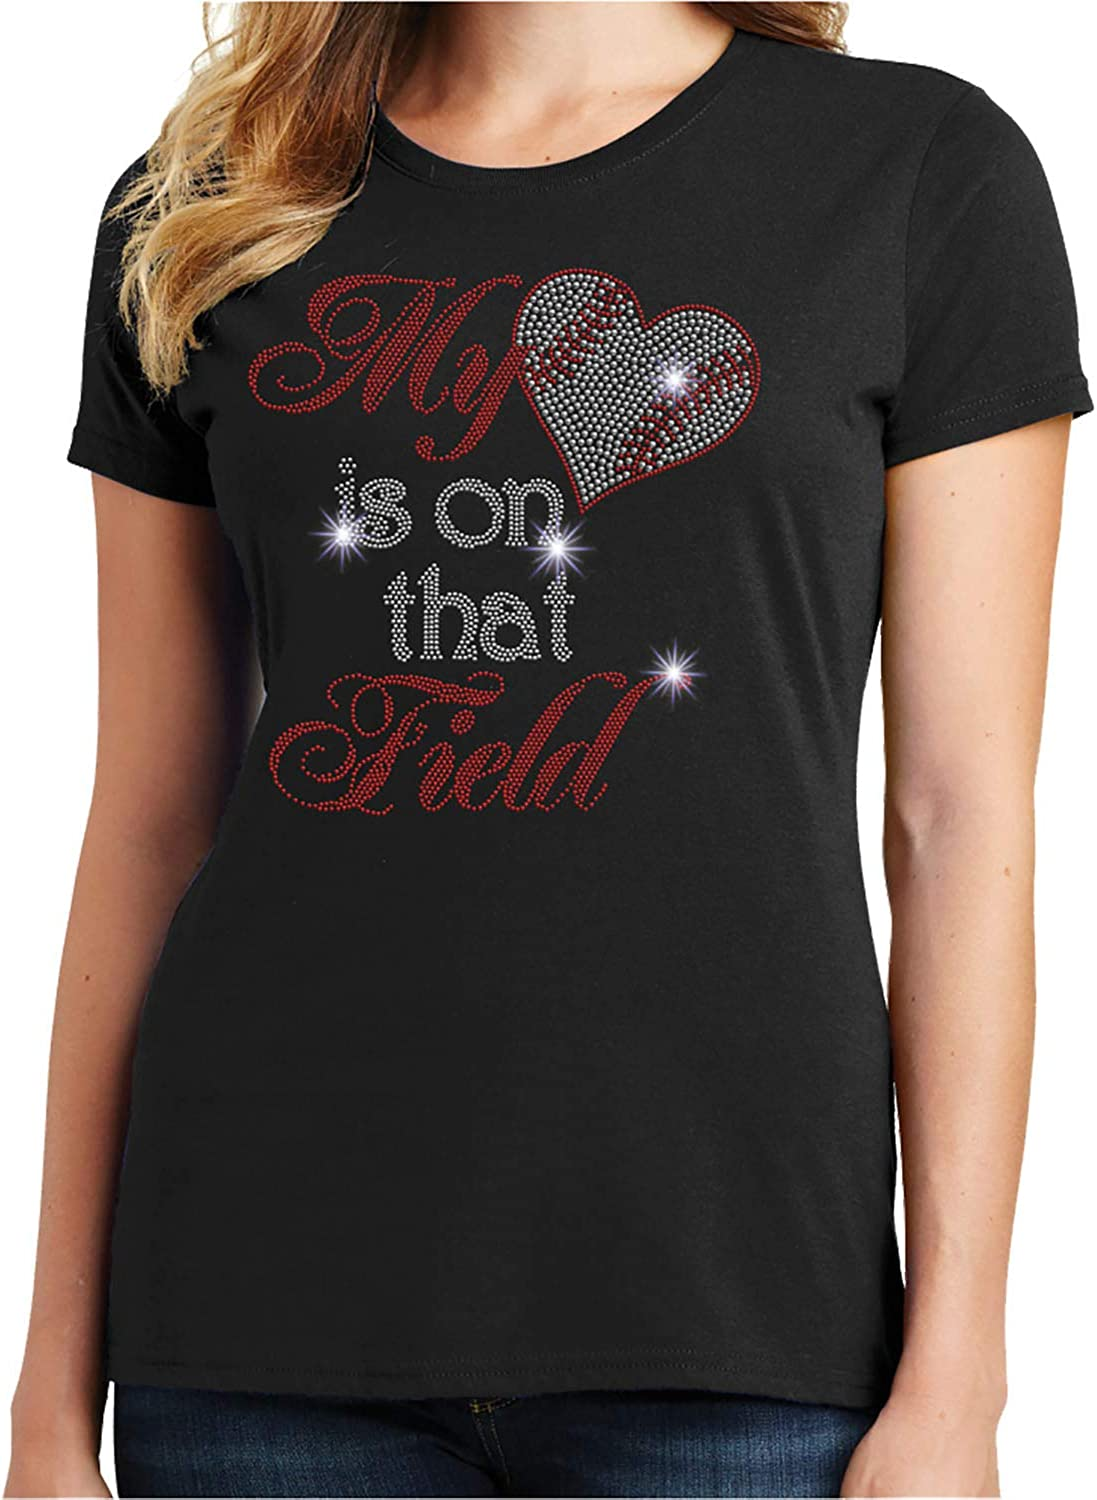 Baseball-My Heart is on That Field Spangle Rhinestone Bling Shirt